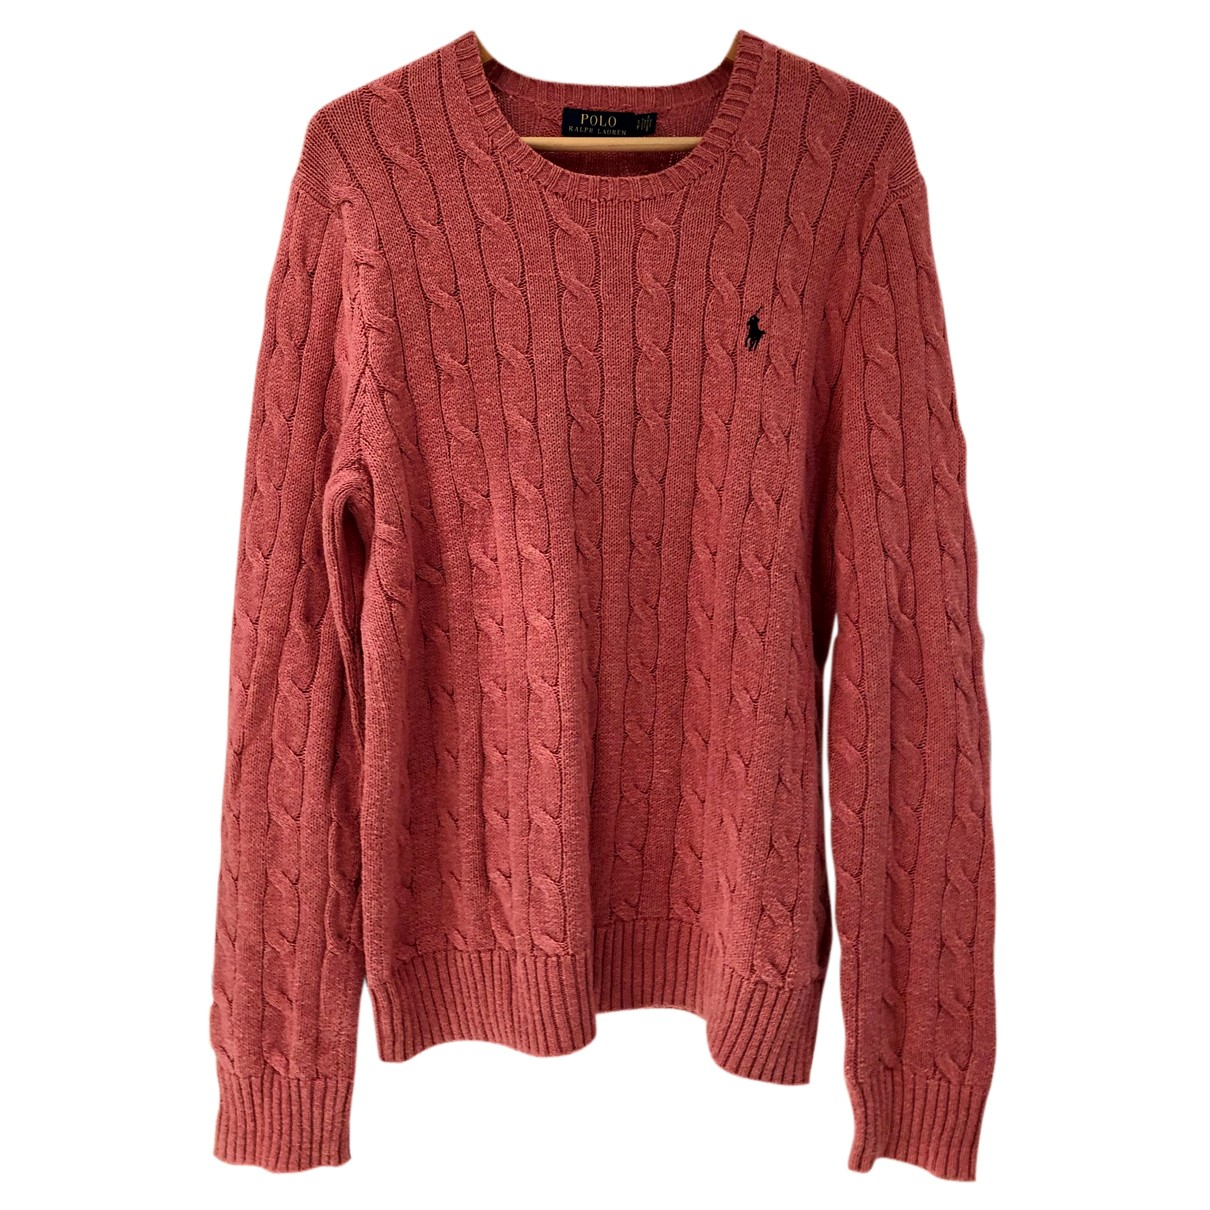 Polo Ralph Lauren N Pink Cotton Knitwear for Women 44 IT